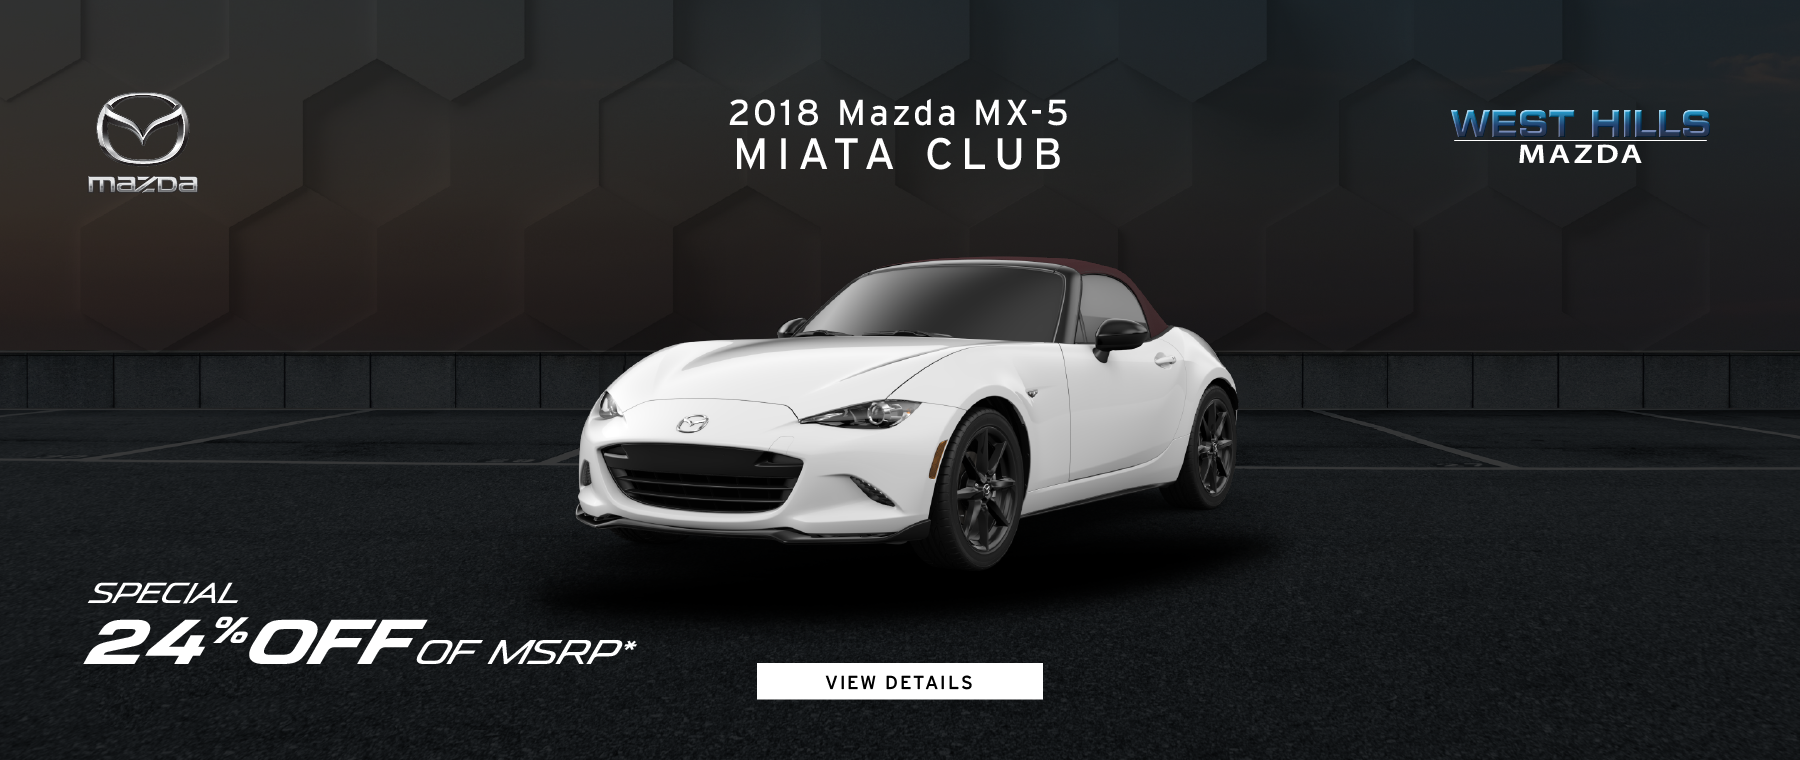 2018 Mazda MX-5 Miata Club 24% OFF of MSRP*   *Offer valid on 2018 Mazda MX-5 Miata Club. Valid VIN: JM1NDAC70J0204386. MSRP is $30,050. 24% OFF of MSRP. Subject to credit approval. Subject to credit approval. Down payment and monthly payment may vary. Not all will qualify for rebate. Excludes state and local taxes, tags, registration and title, insurance and dealer charges. A negotiable dealer documentary service fee of up to $150 may be added to the sale price or capitalized cost. Limit one discount per vehicle per customer. See dealer for complete details. Offer Expires: 3/31/2019.